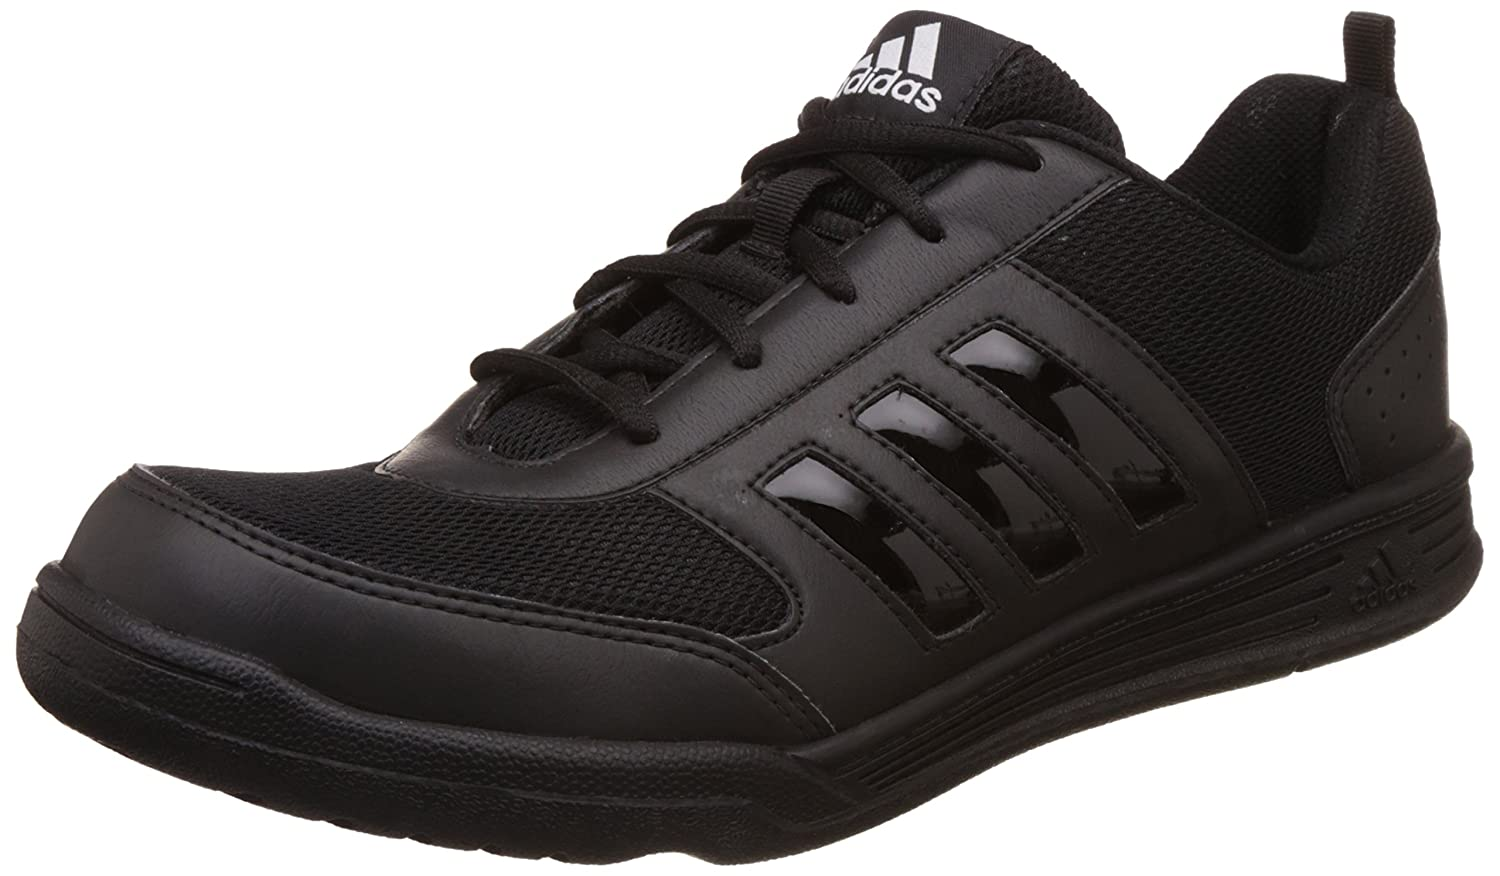 Buy Adidas Black Formal Shoes at Amazon.in